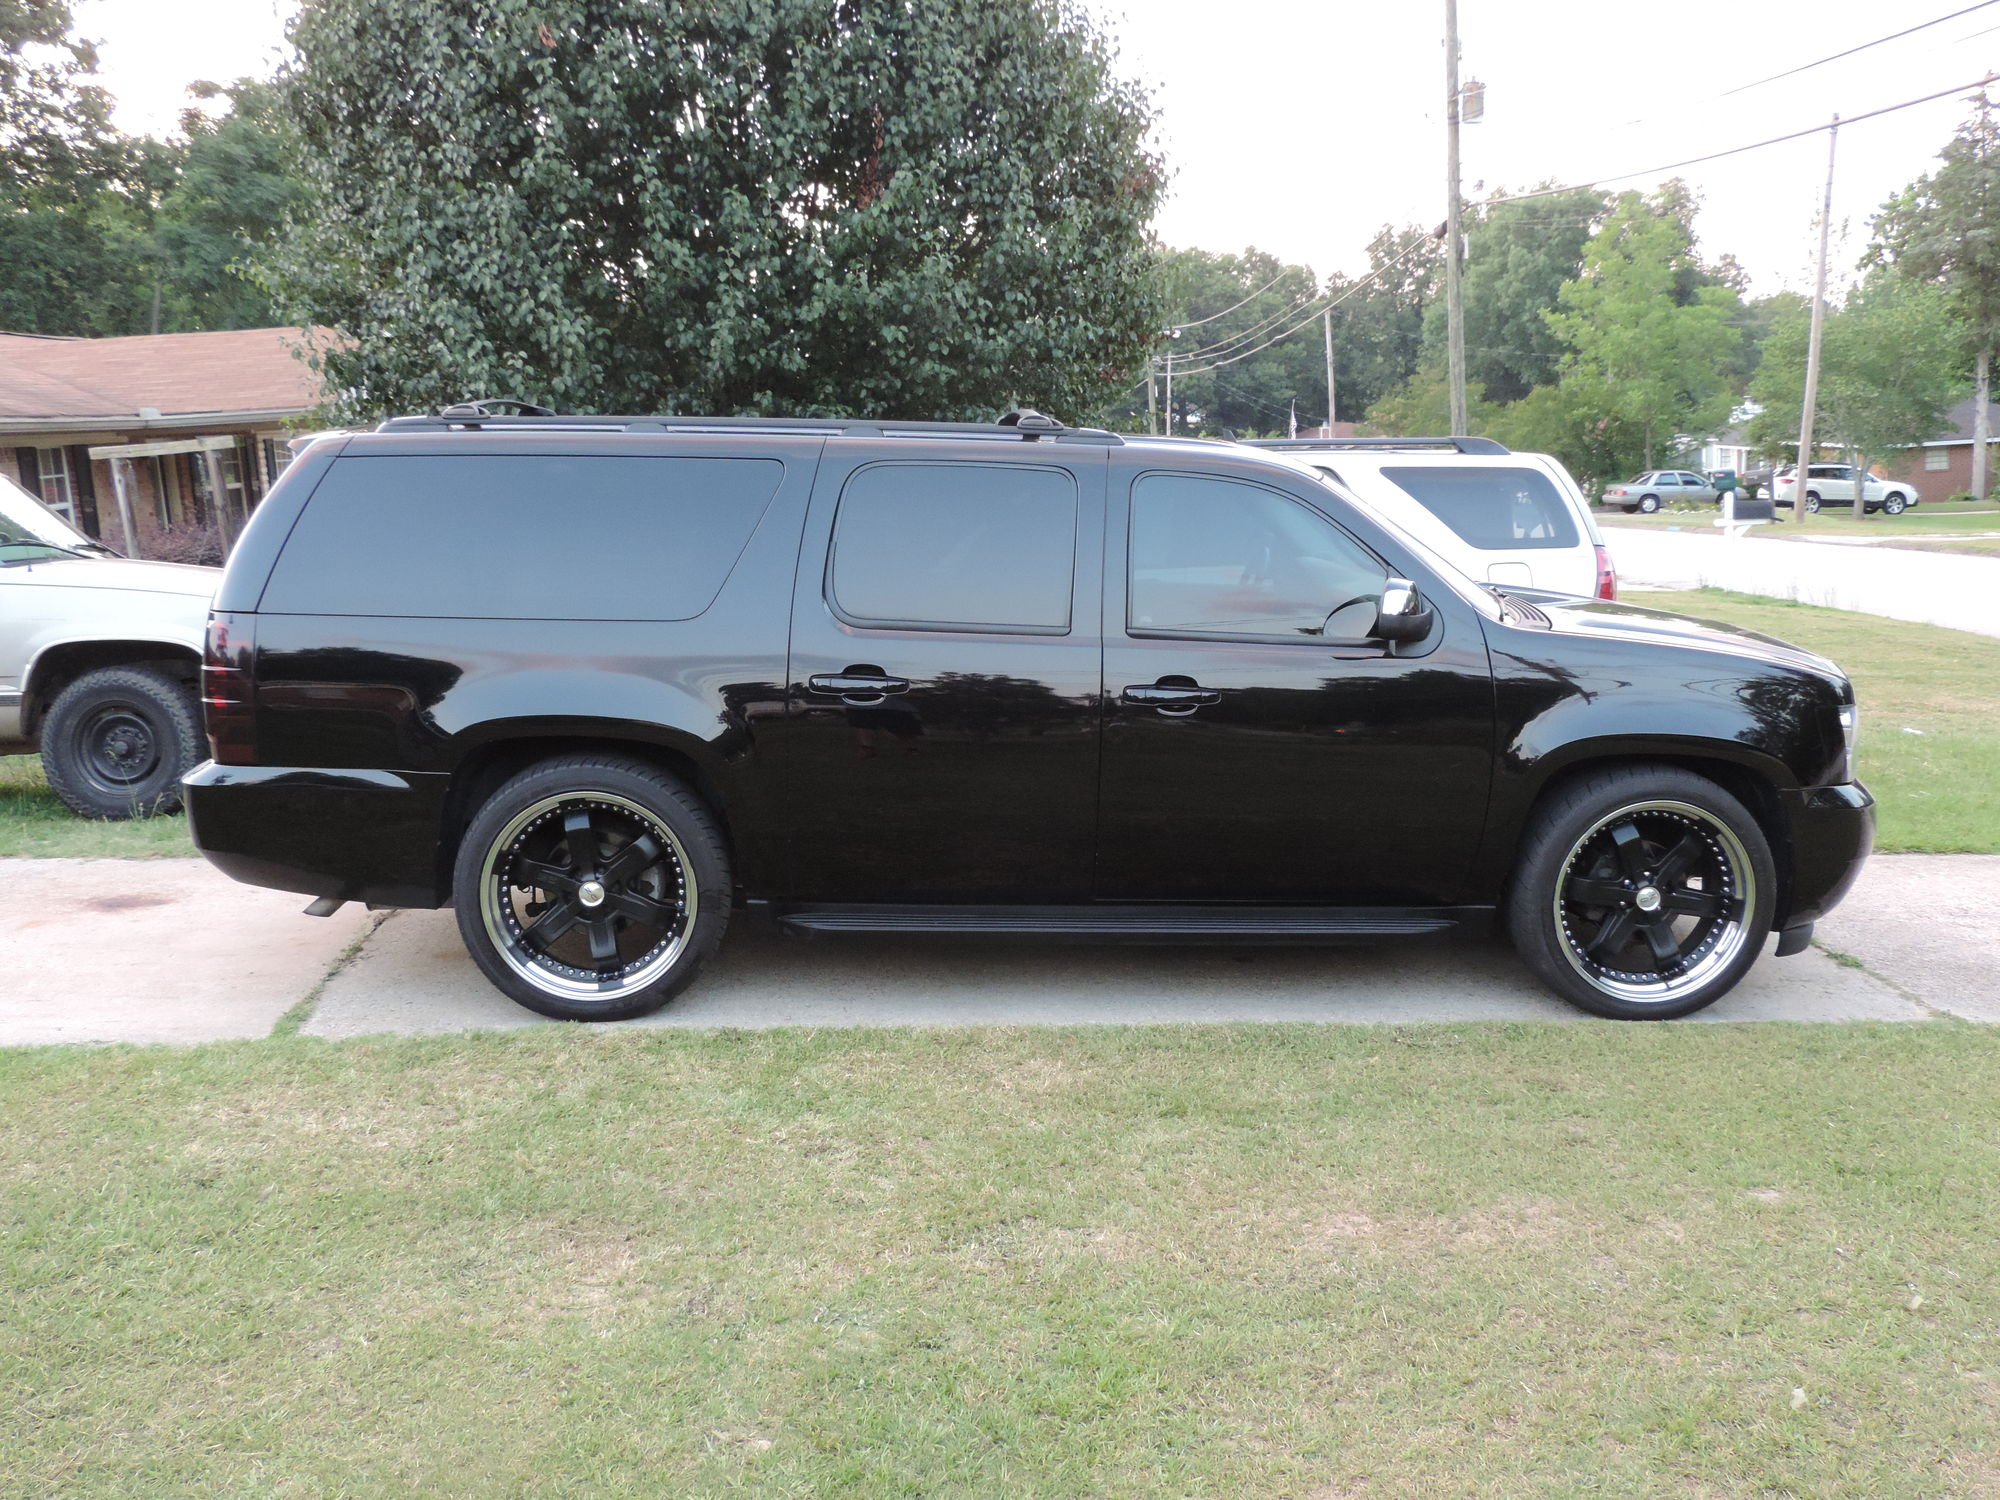 Blacked Out 2008 Suburban Ltz 78541 on 2000 chevy tahoe ltz